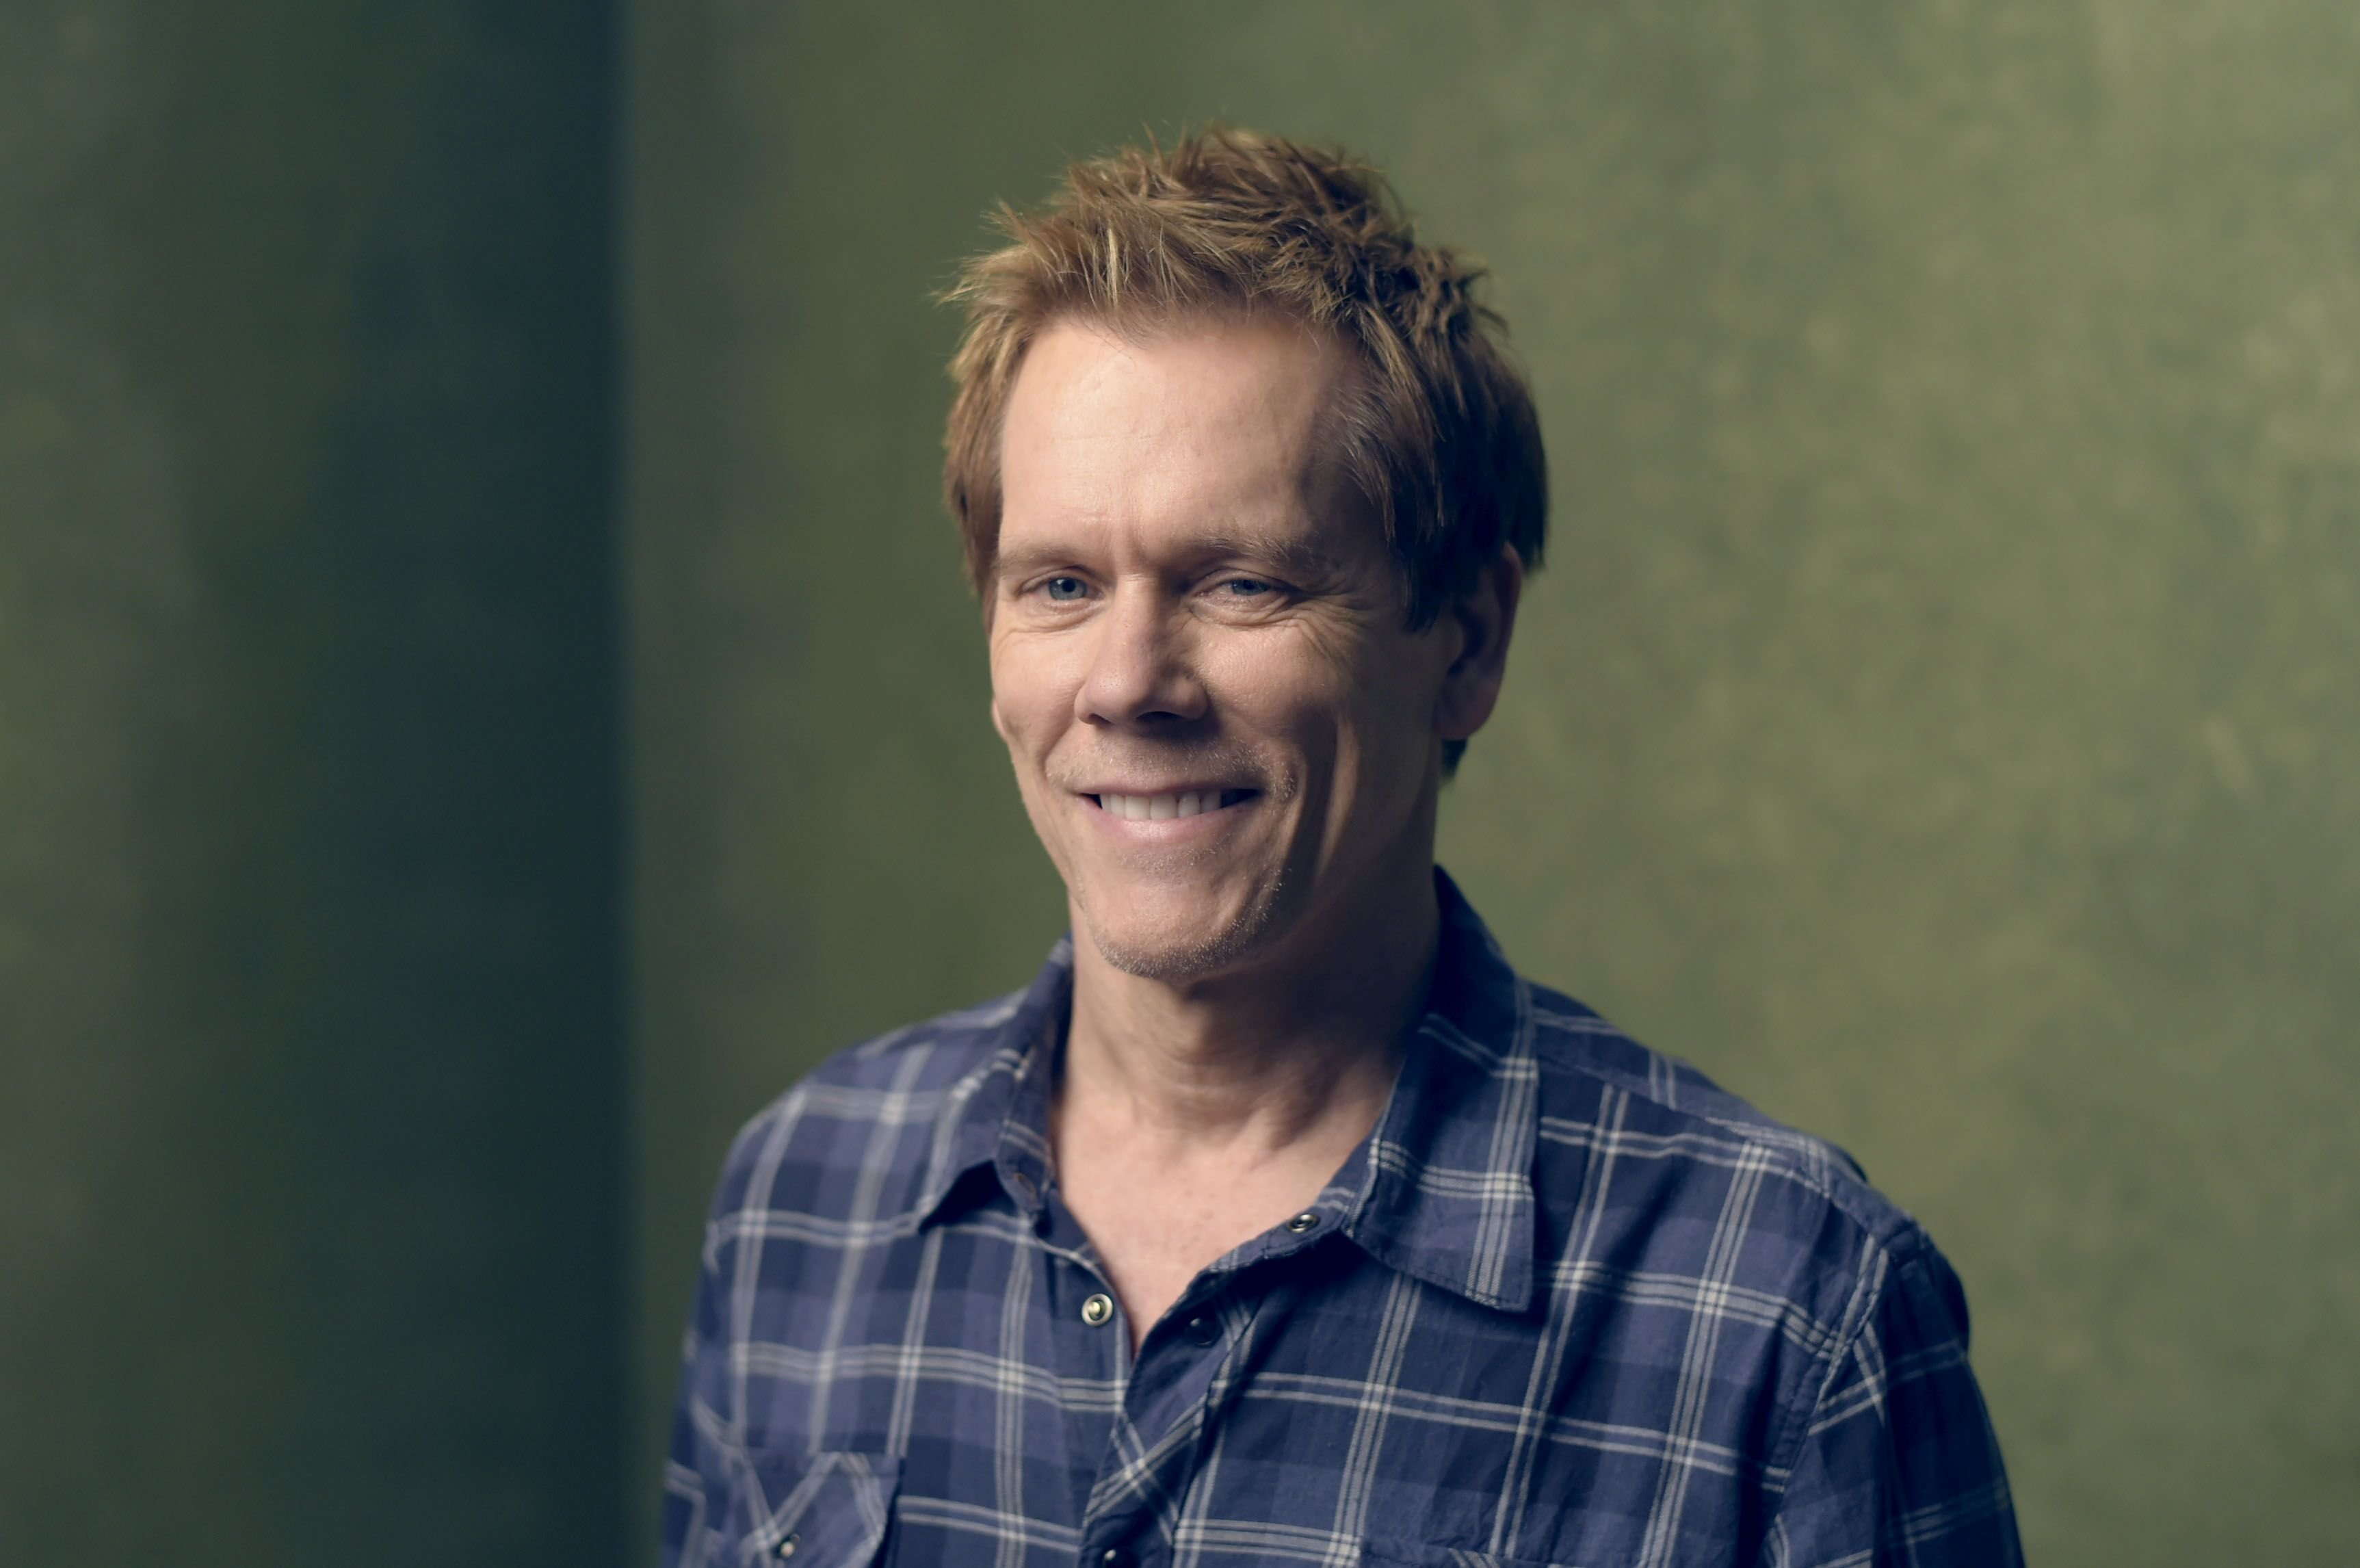 """Actor Kevin Bacon from """"Cop Car"""" poses for a portrait at the Village at the Lift Presented by McDonald's McCafe during the 2015 Sundance Film Festival on January 24, 2015 